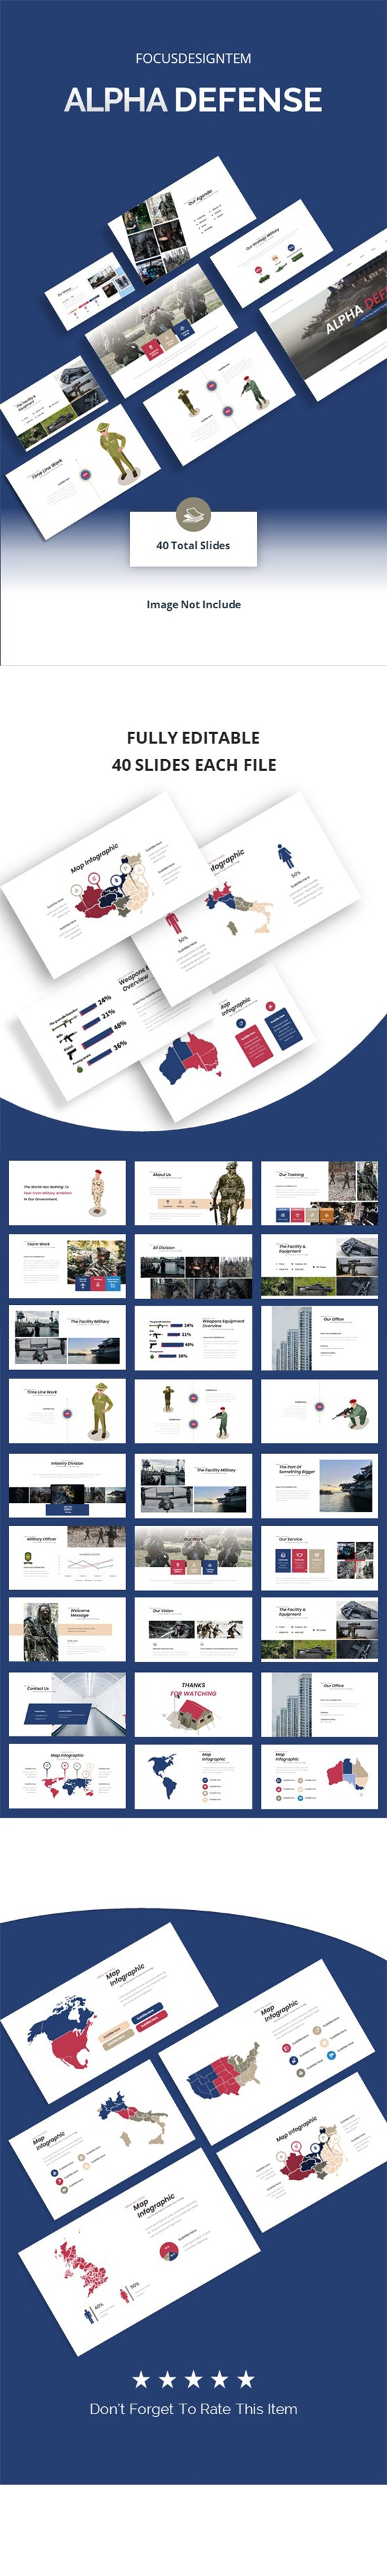 Military Alpha Defense Powerpoint Template - PowerPoint Templates Presentation Templates